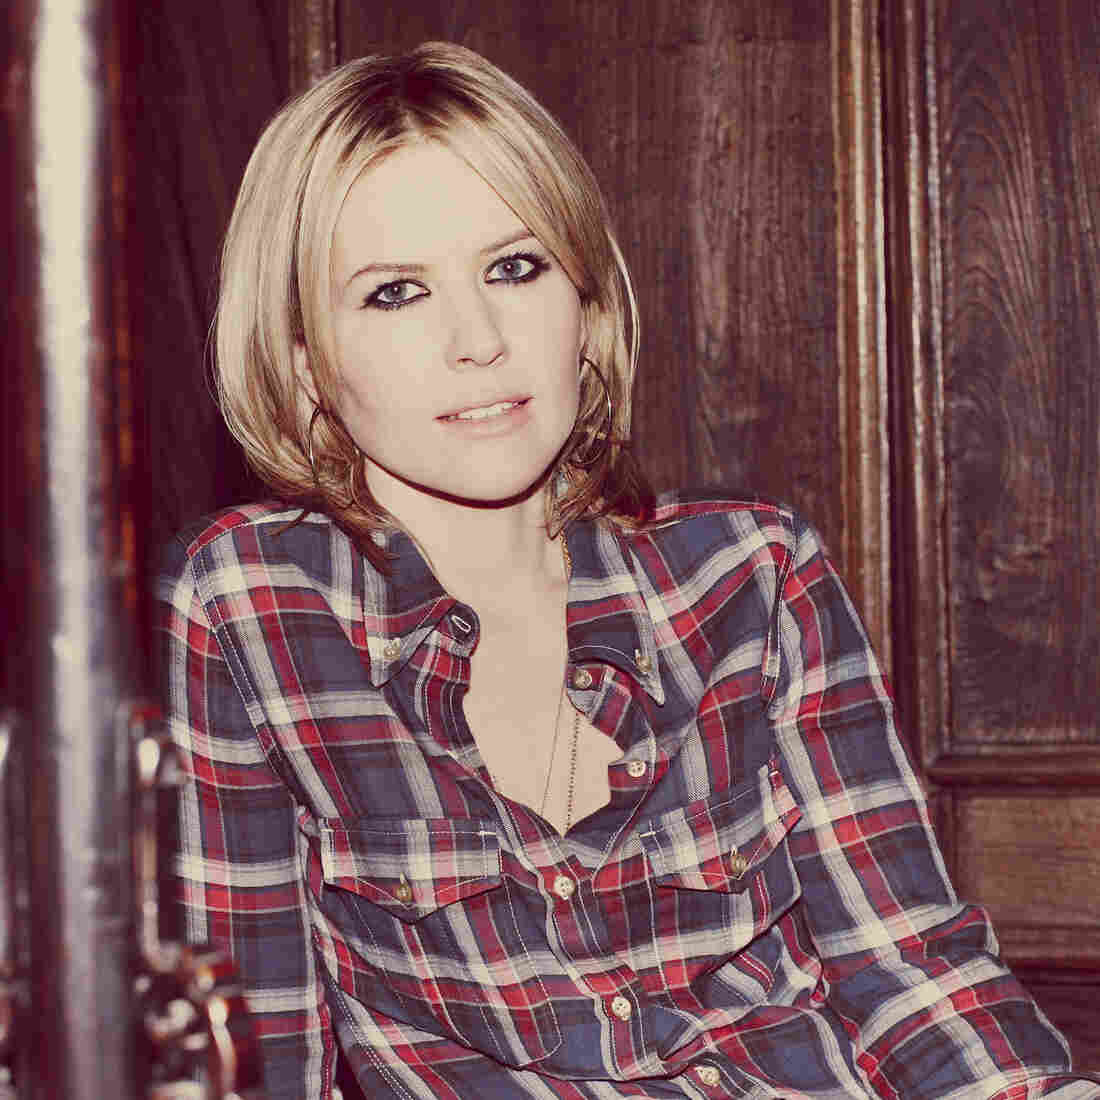 Hear A New Song From Dido Featuring Kendrick Lamar